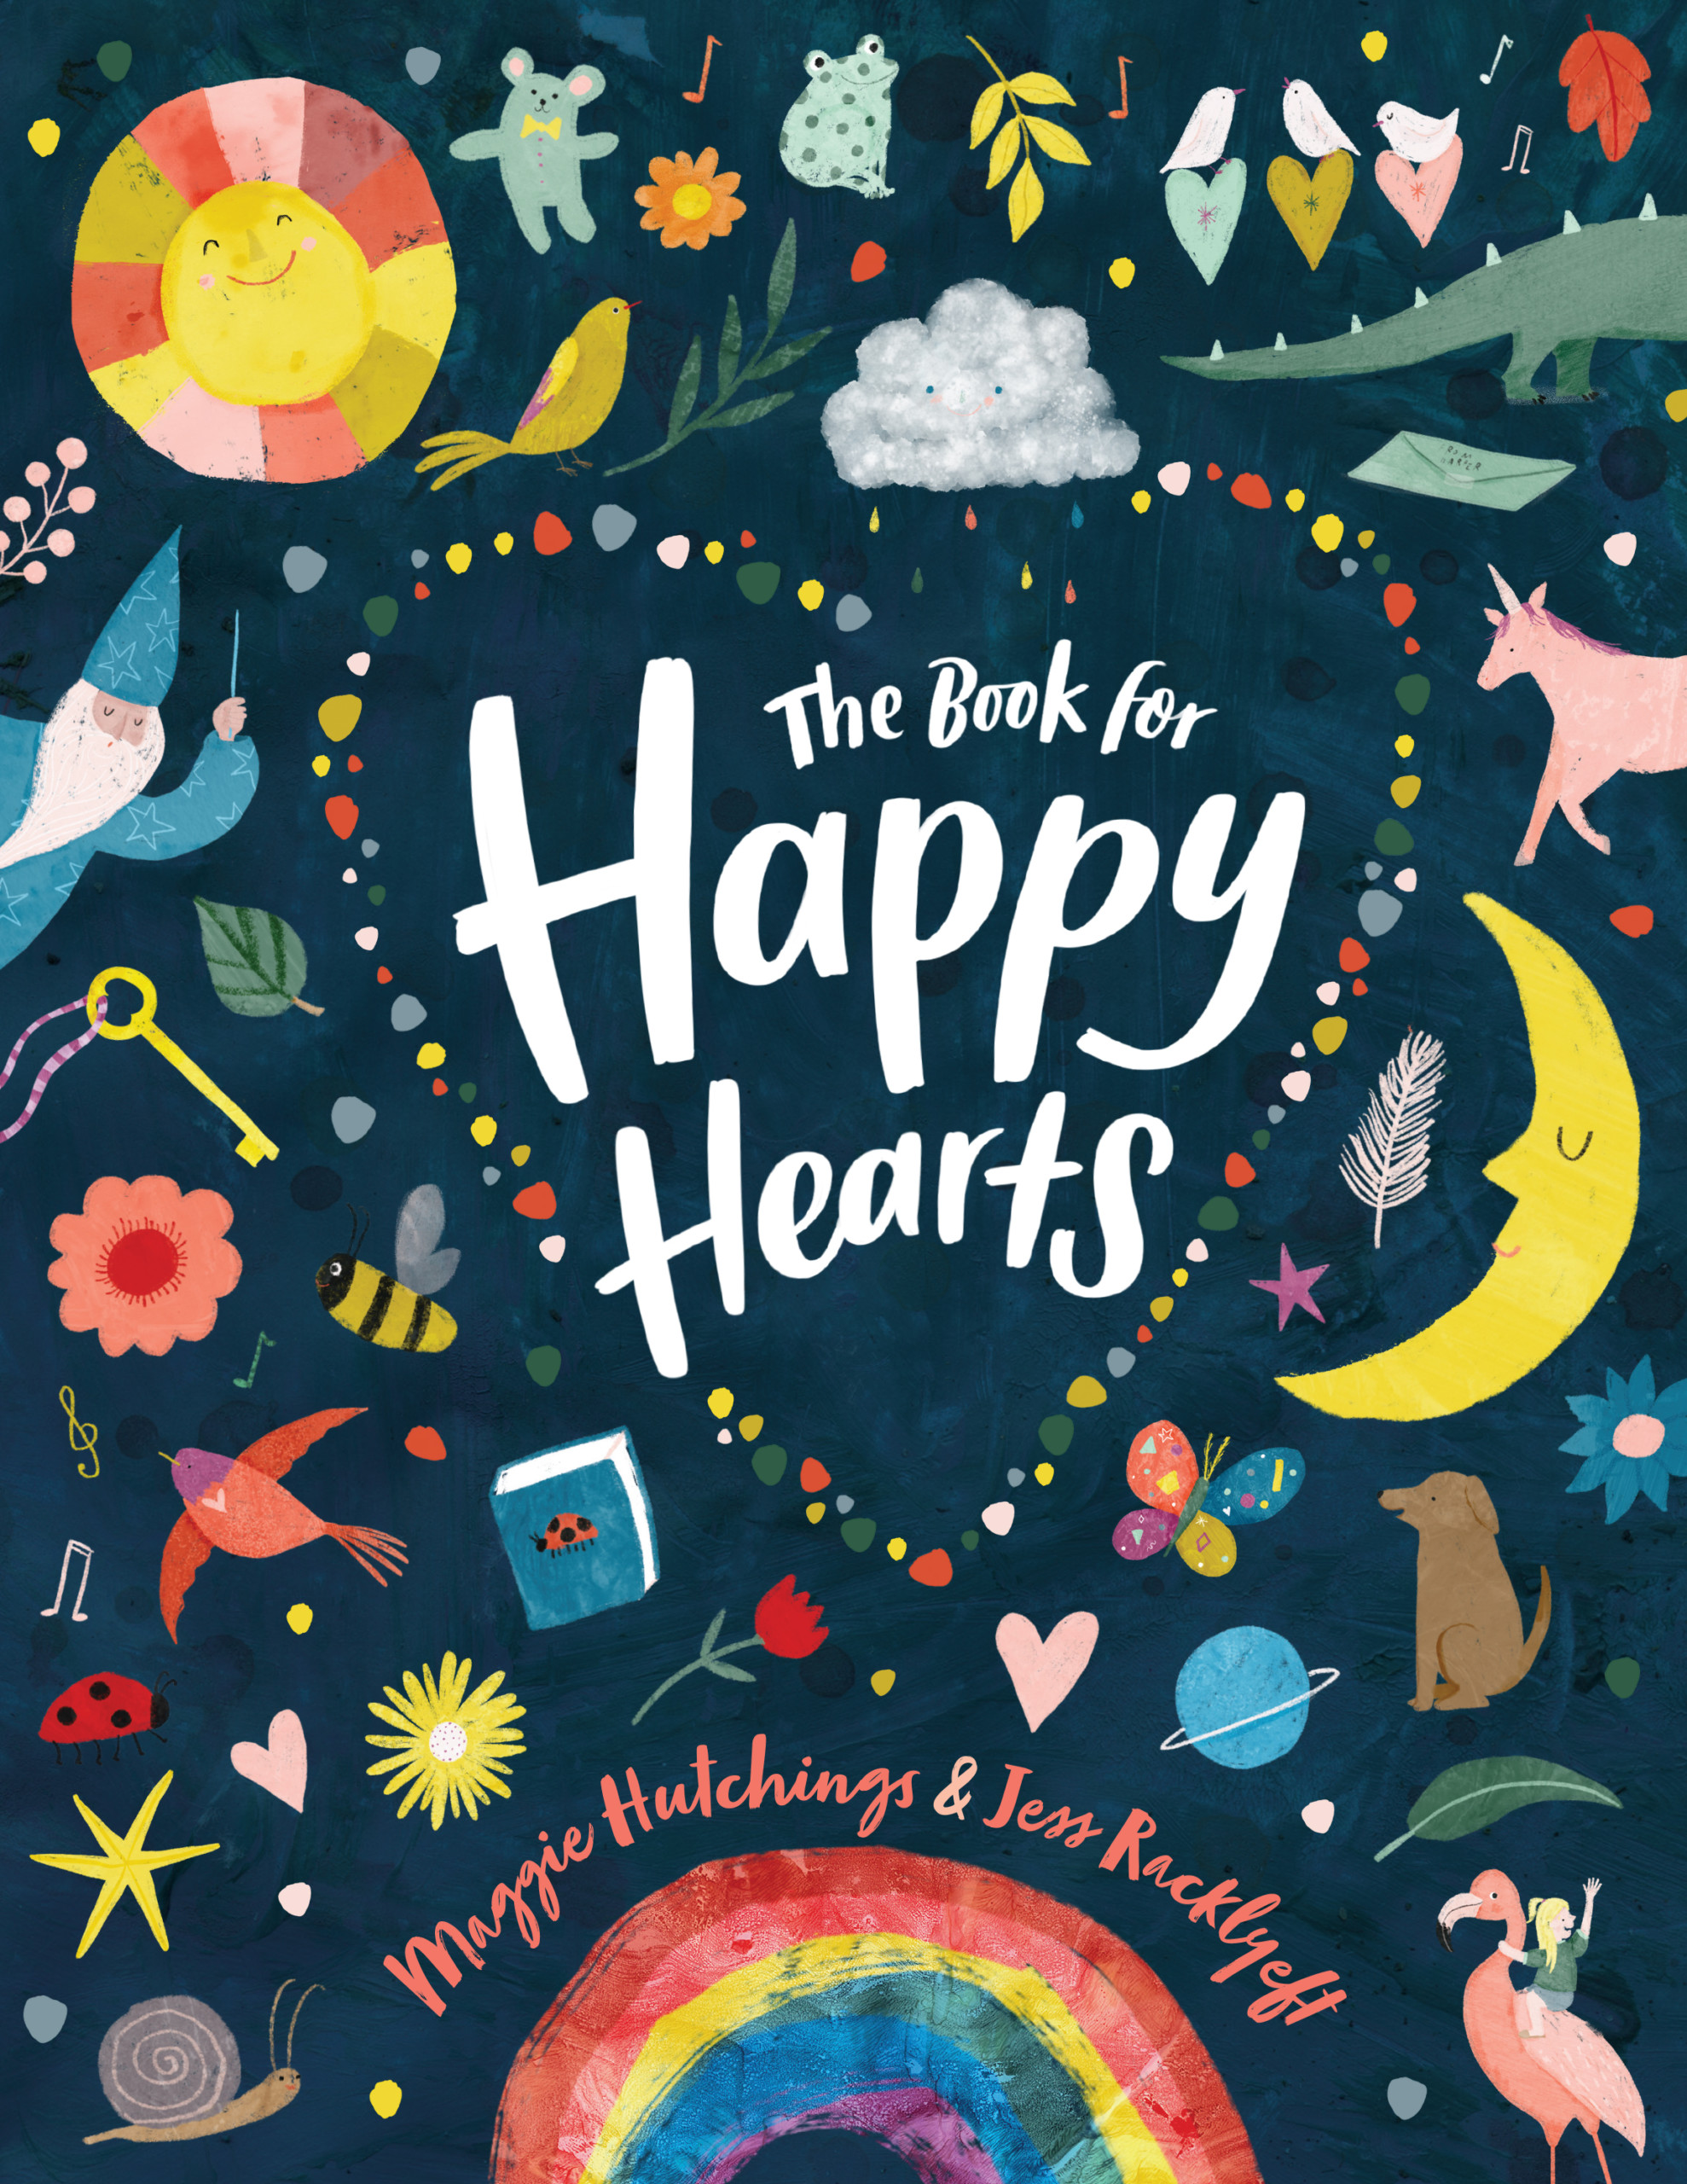 Happy Hearts by Maggie Hutchings, illustrated by Jess Racklyeft